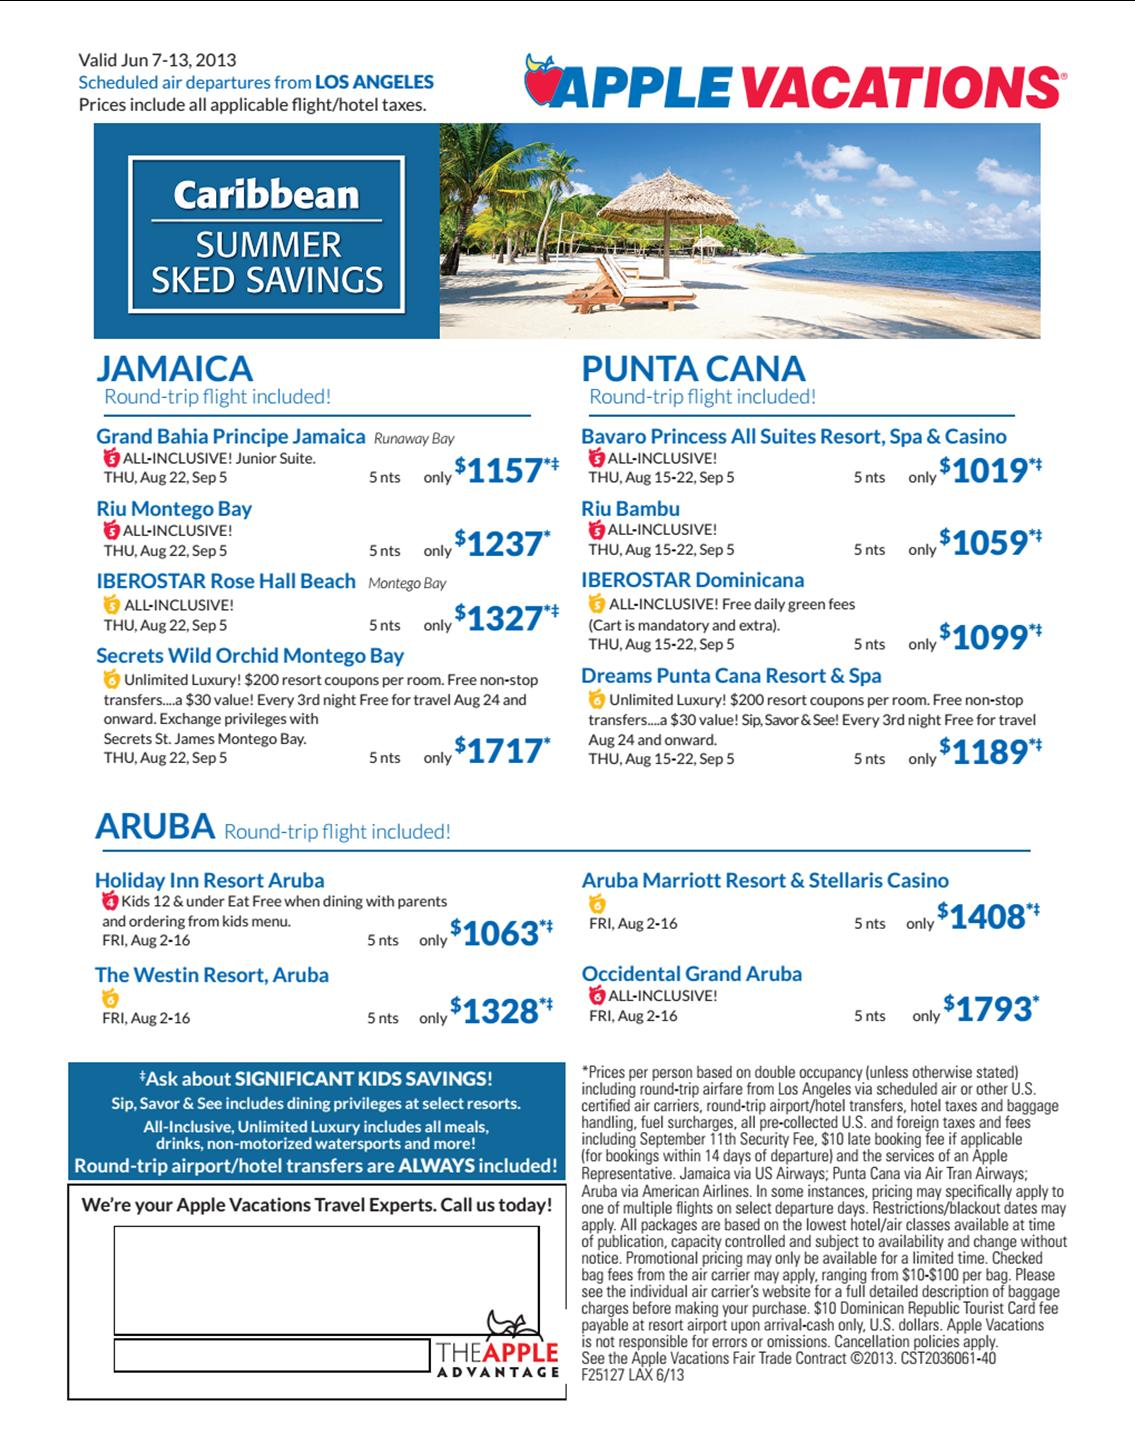 Caribe 7Jun-13Jun